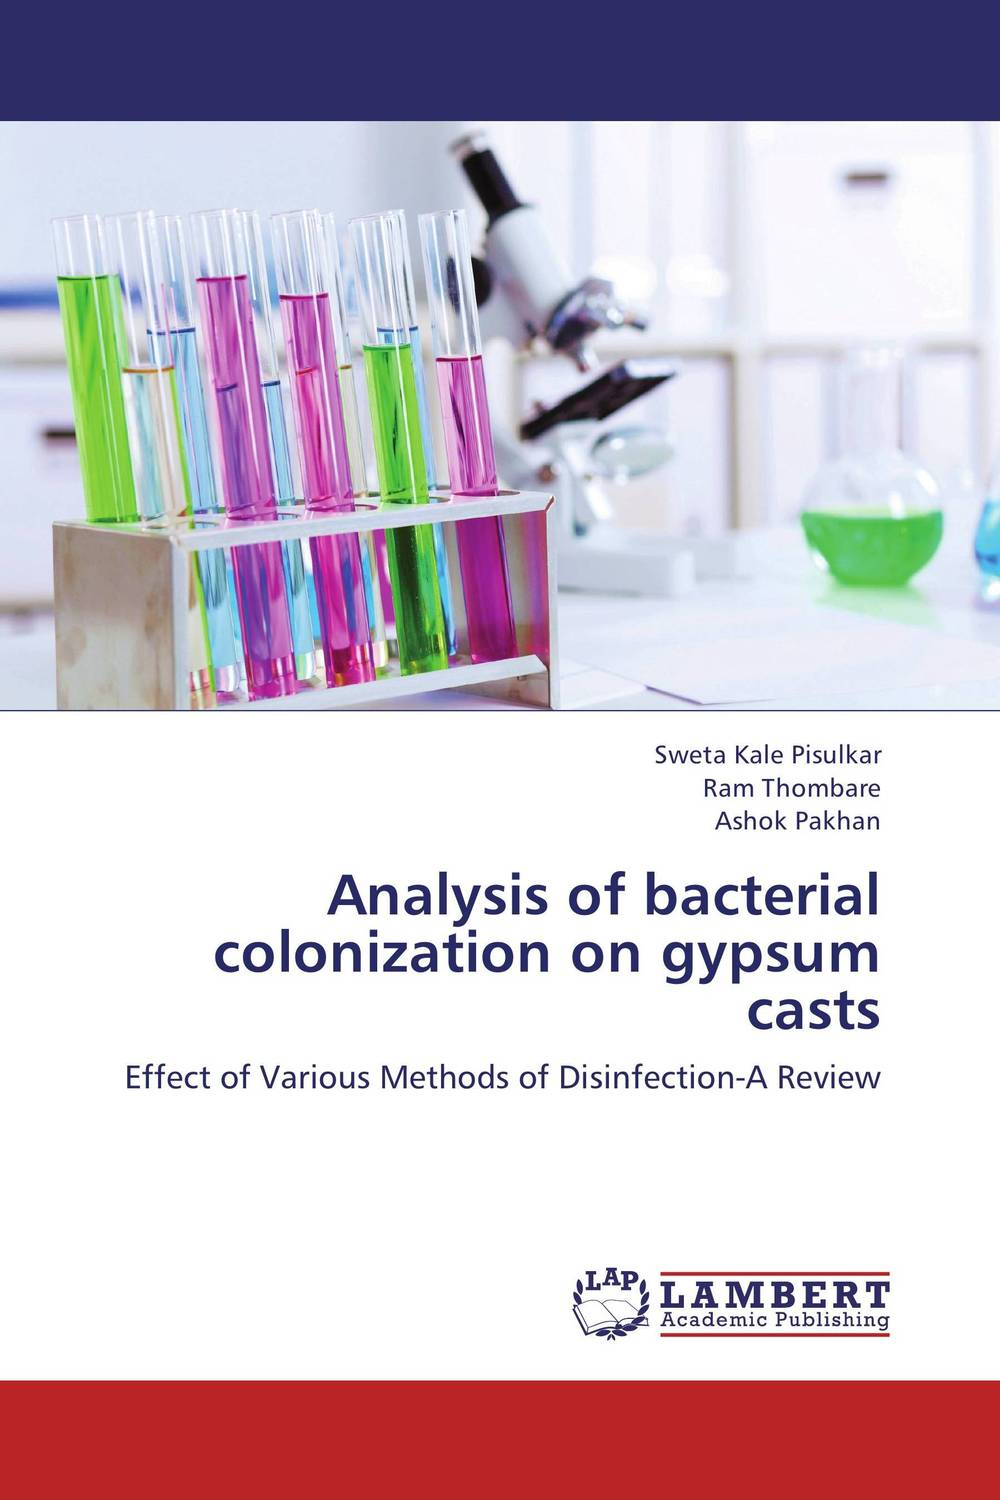 Analysis of bacterial colonization on gypsum casts analysis of bacterial colonization on gypsum casts